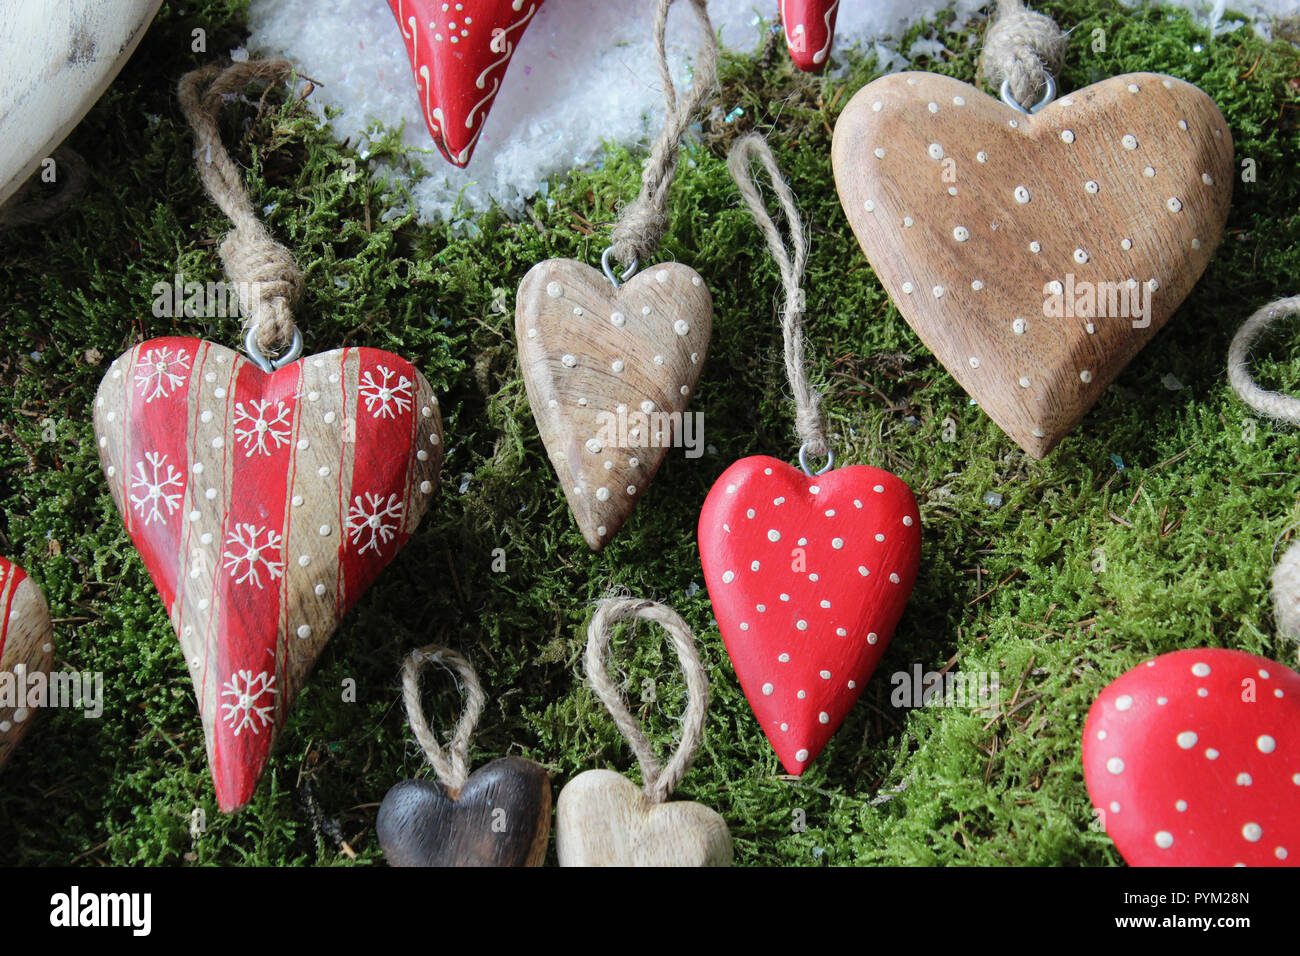 Festivals Christmas Cut Out Wooden Heart Decorations Stock Photo